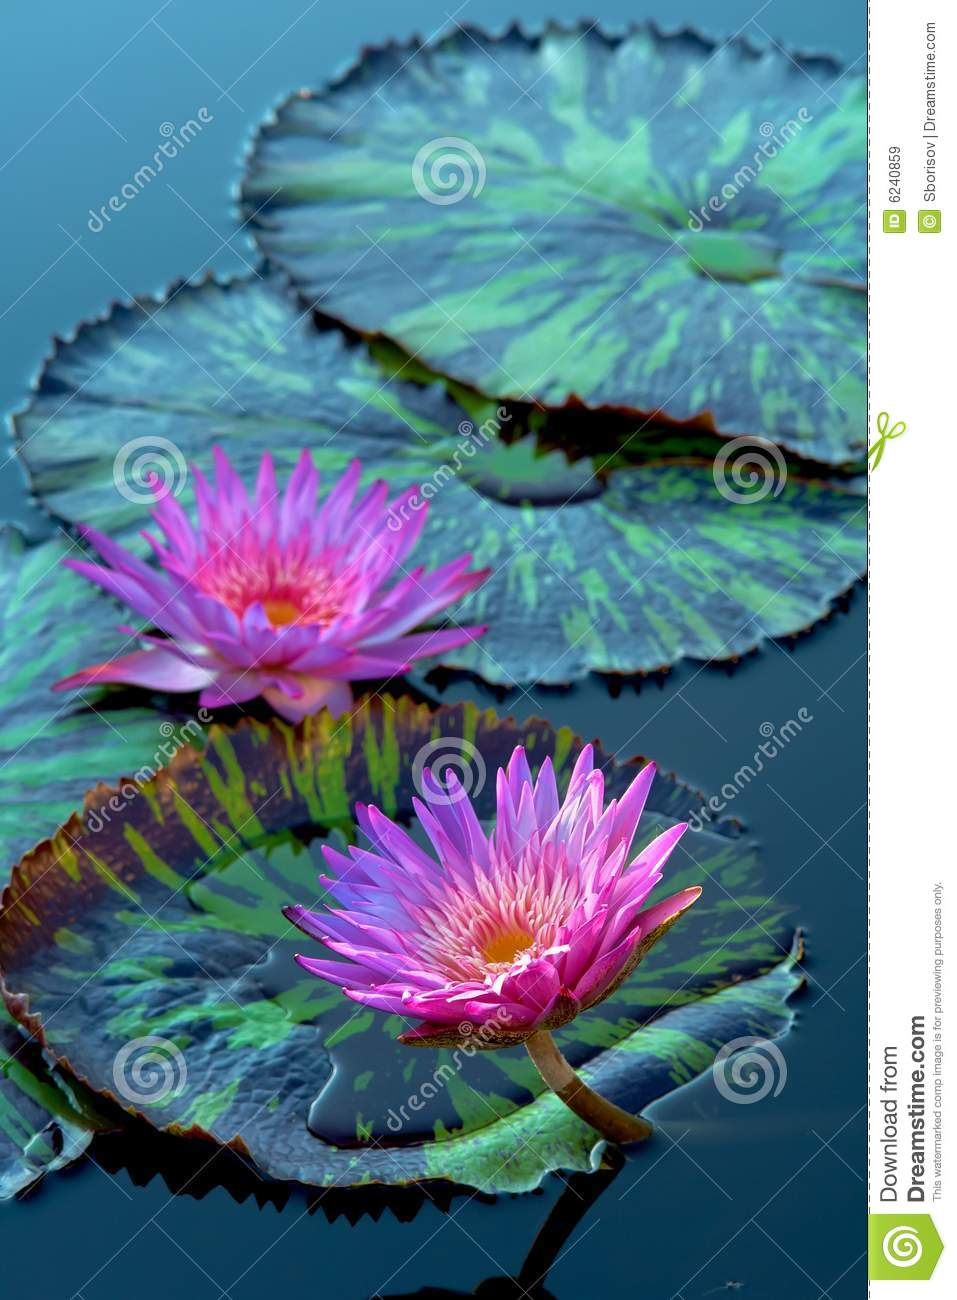 Water Lily Flowers Stock Image Image Of Flower Outdoor 6240859